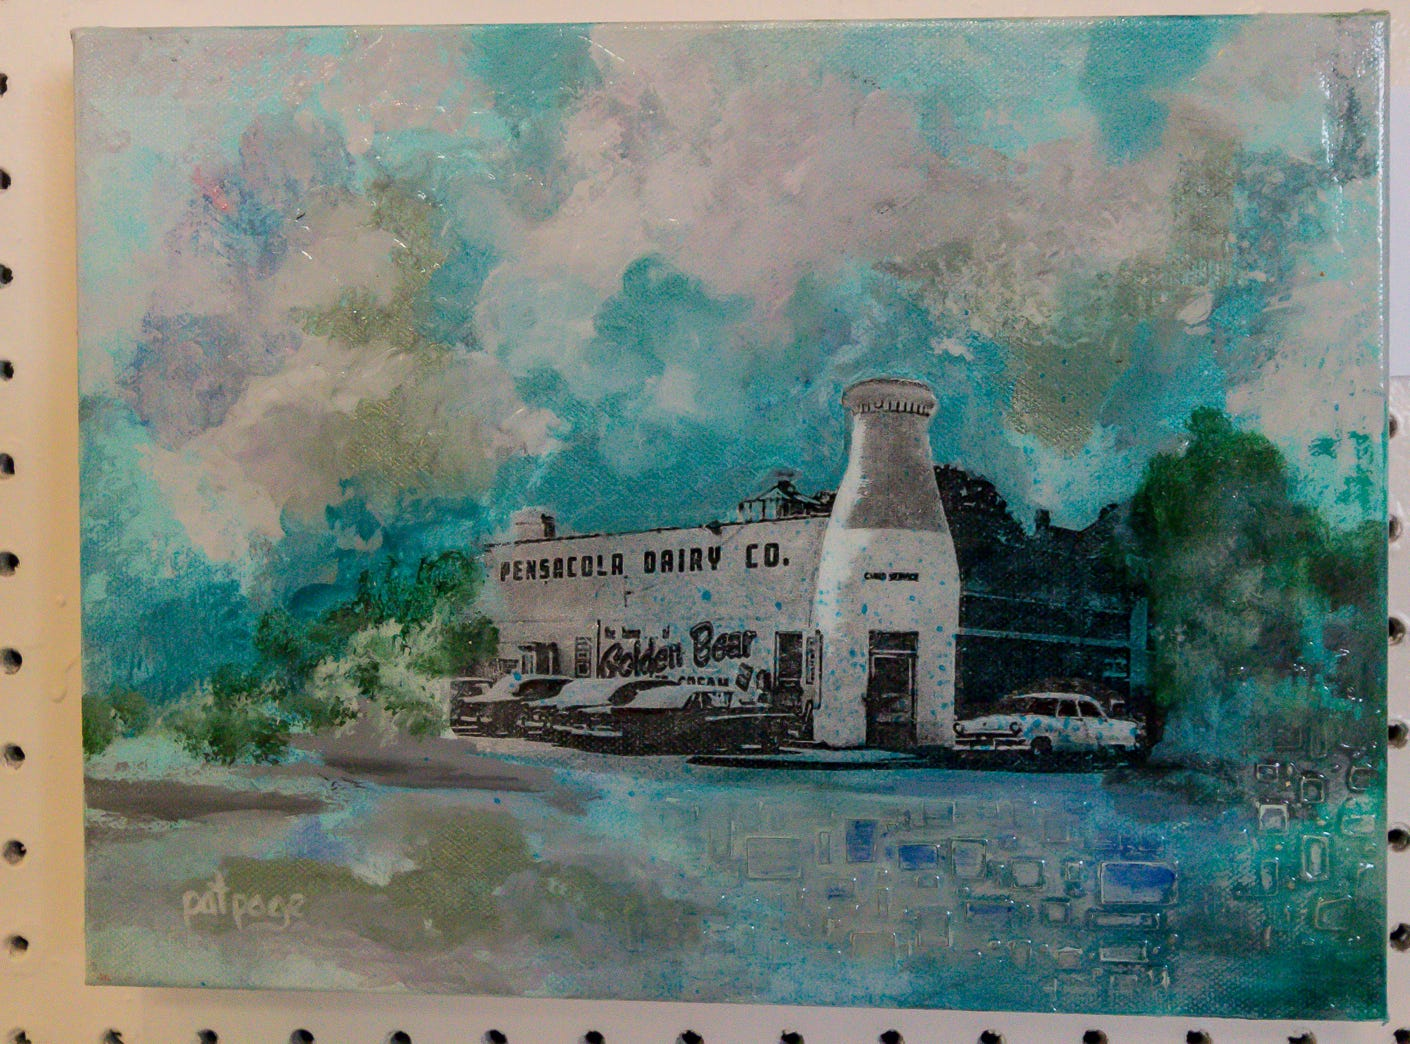 """Pensacola Dairy,"" a 9""x12"" mixed media piece by Pat Page, is among over one hundred pieces on display in the Fine Arts Exhibition at the Pensacola Interstate Fair on Wednesday, October 17, 2018."